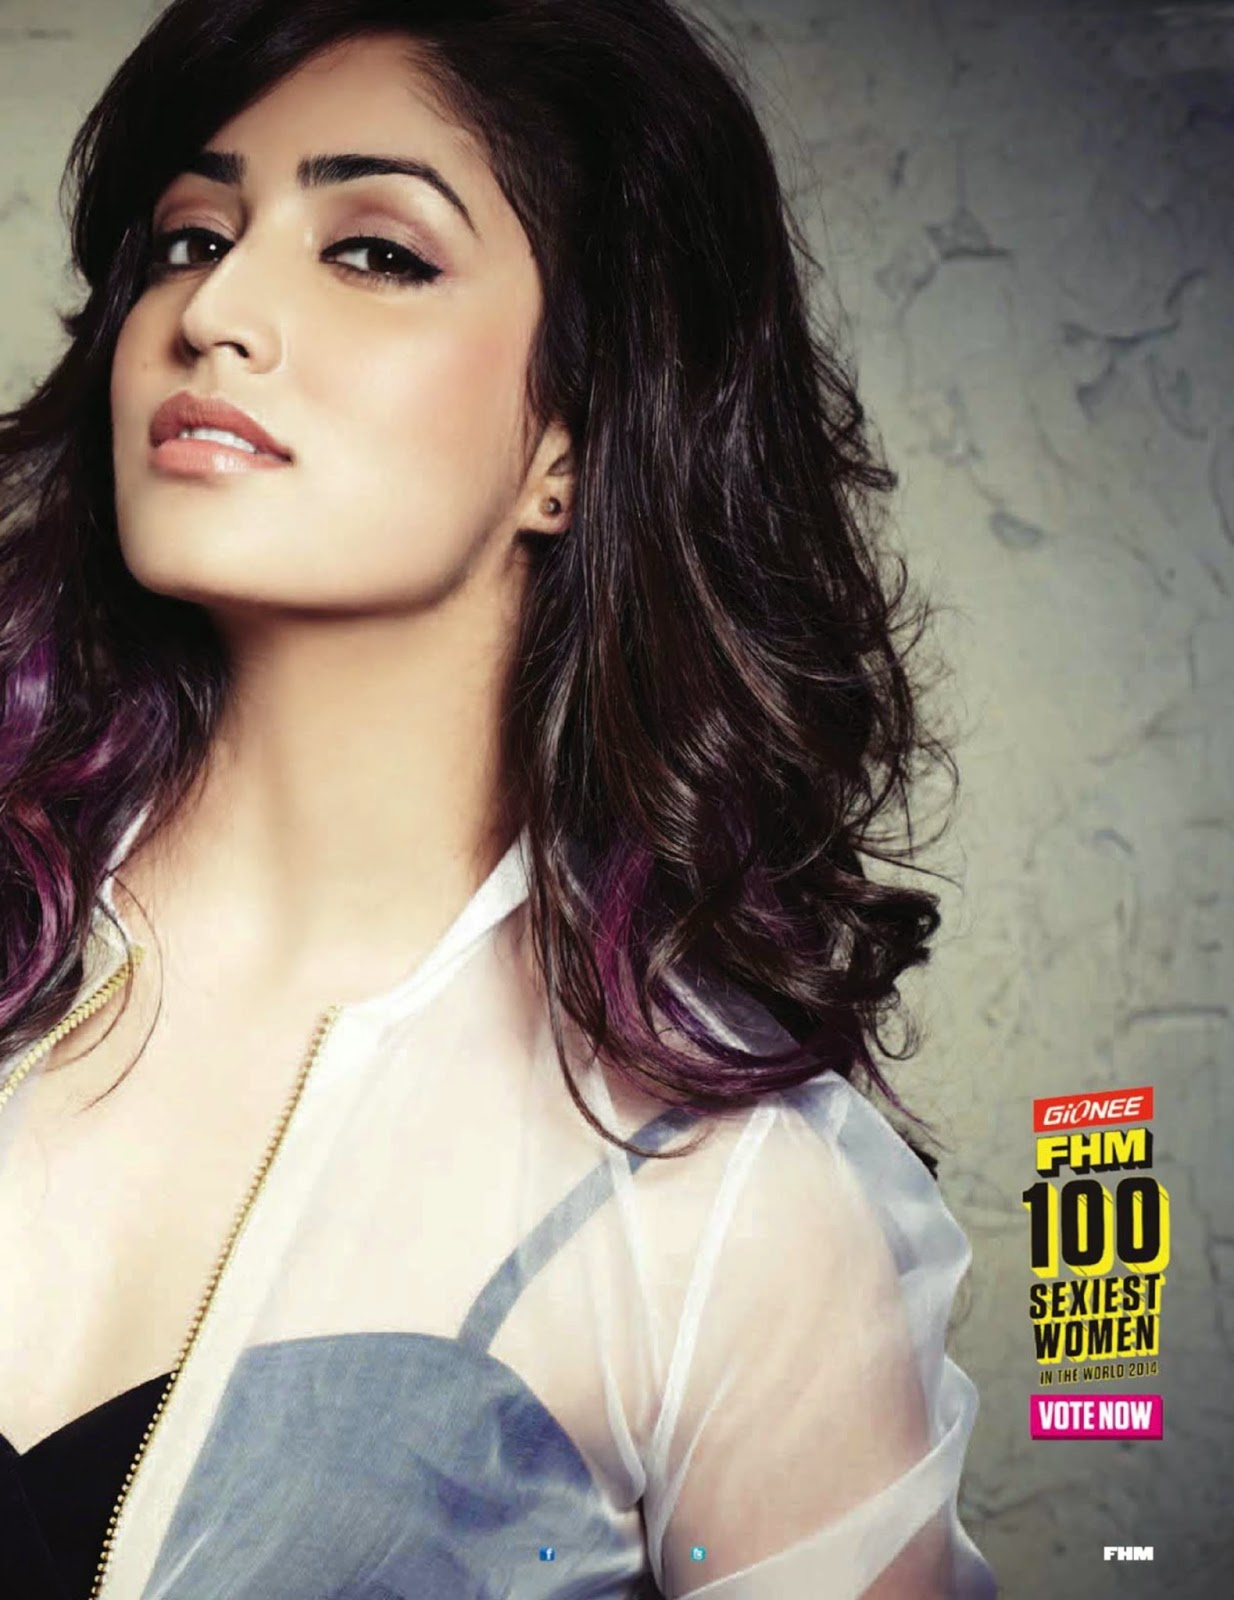 http://www.funmag.org/bollywood-mag/yami-gautum-photoshoot-for-fhm-magazine-june-2014/